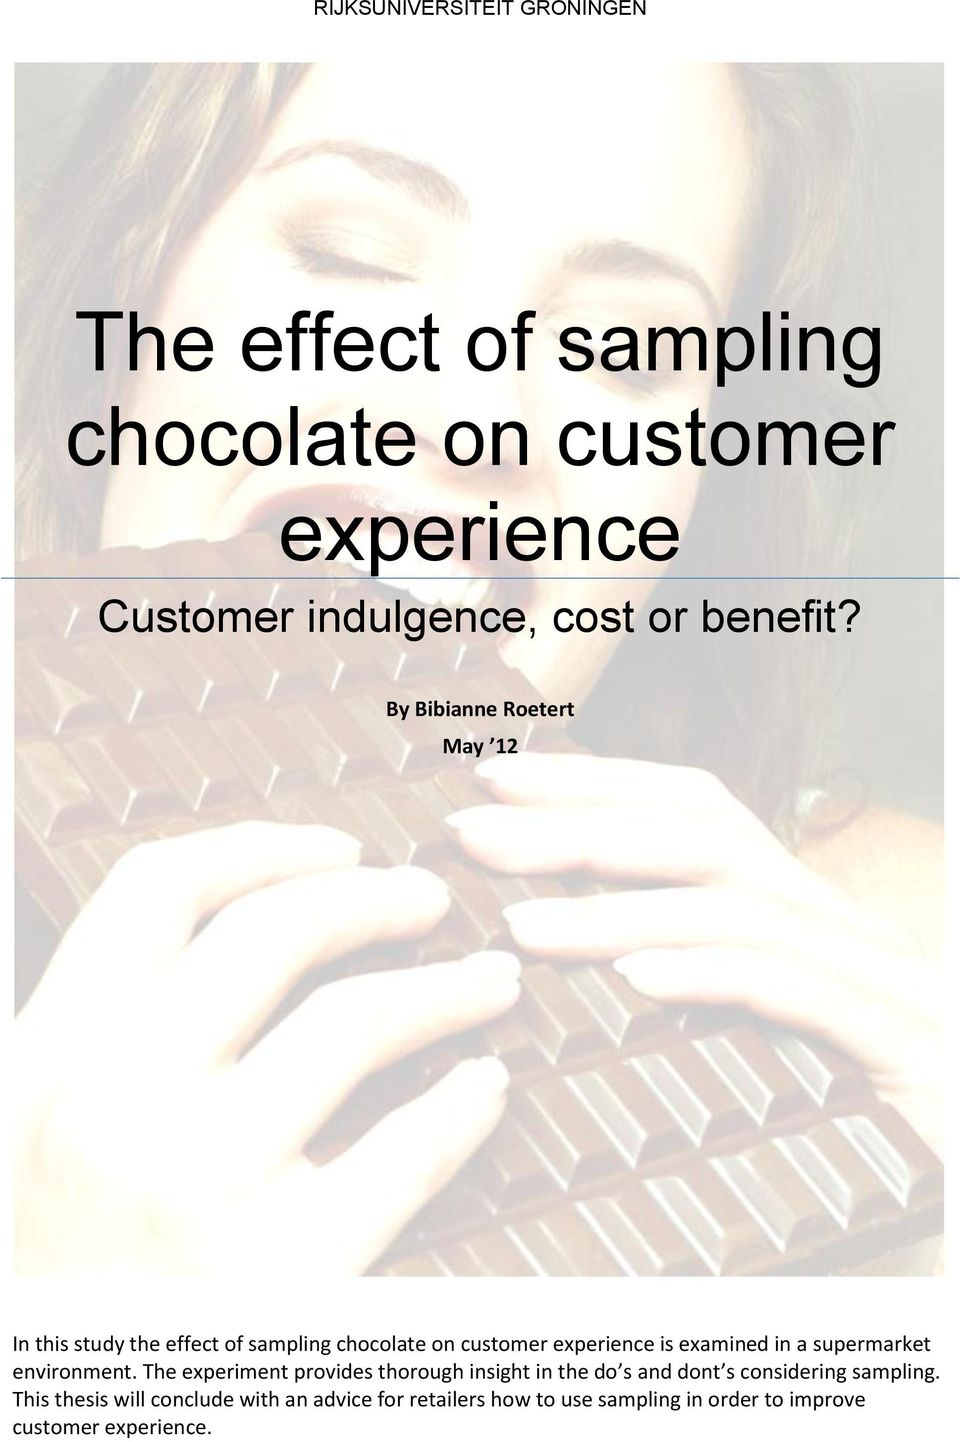 By Bibianne Roetert May 12 In this study the effect of sampling chocolate on customer experience is examined in a